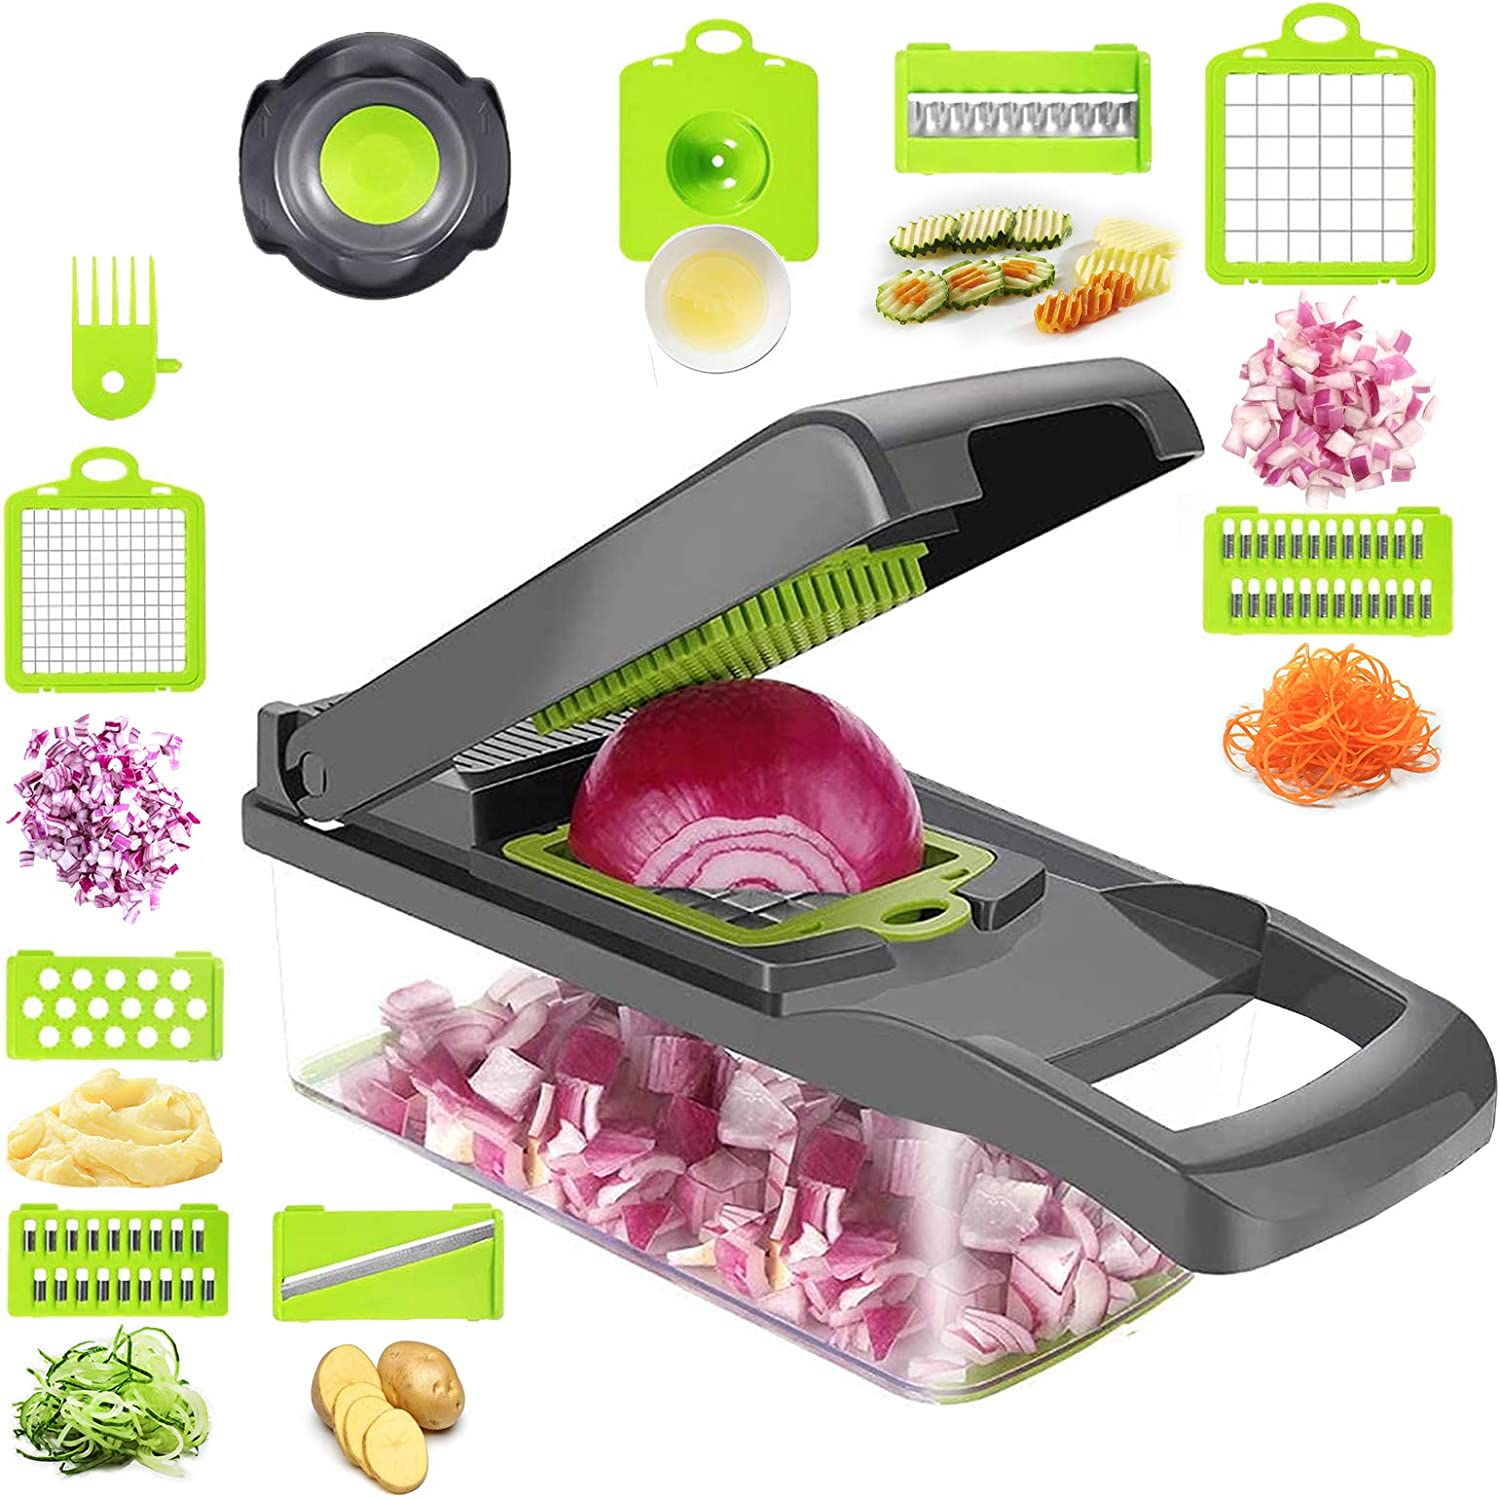 Kuanhong Vegetable Chopper, Veggie Slicer, Dicer, Vegetable Cutter, Onion Chopper with Container, Multifunction Pro Food Chopper, Kitchen(8 Blades), with Safety Hand Protection tool and Egg Separator